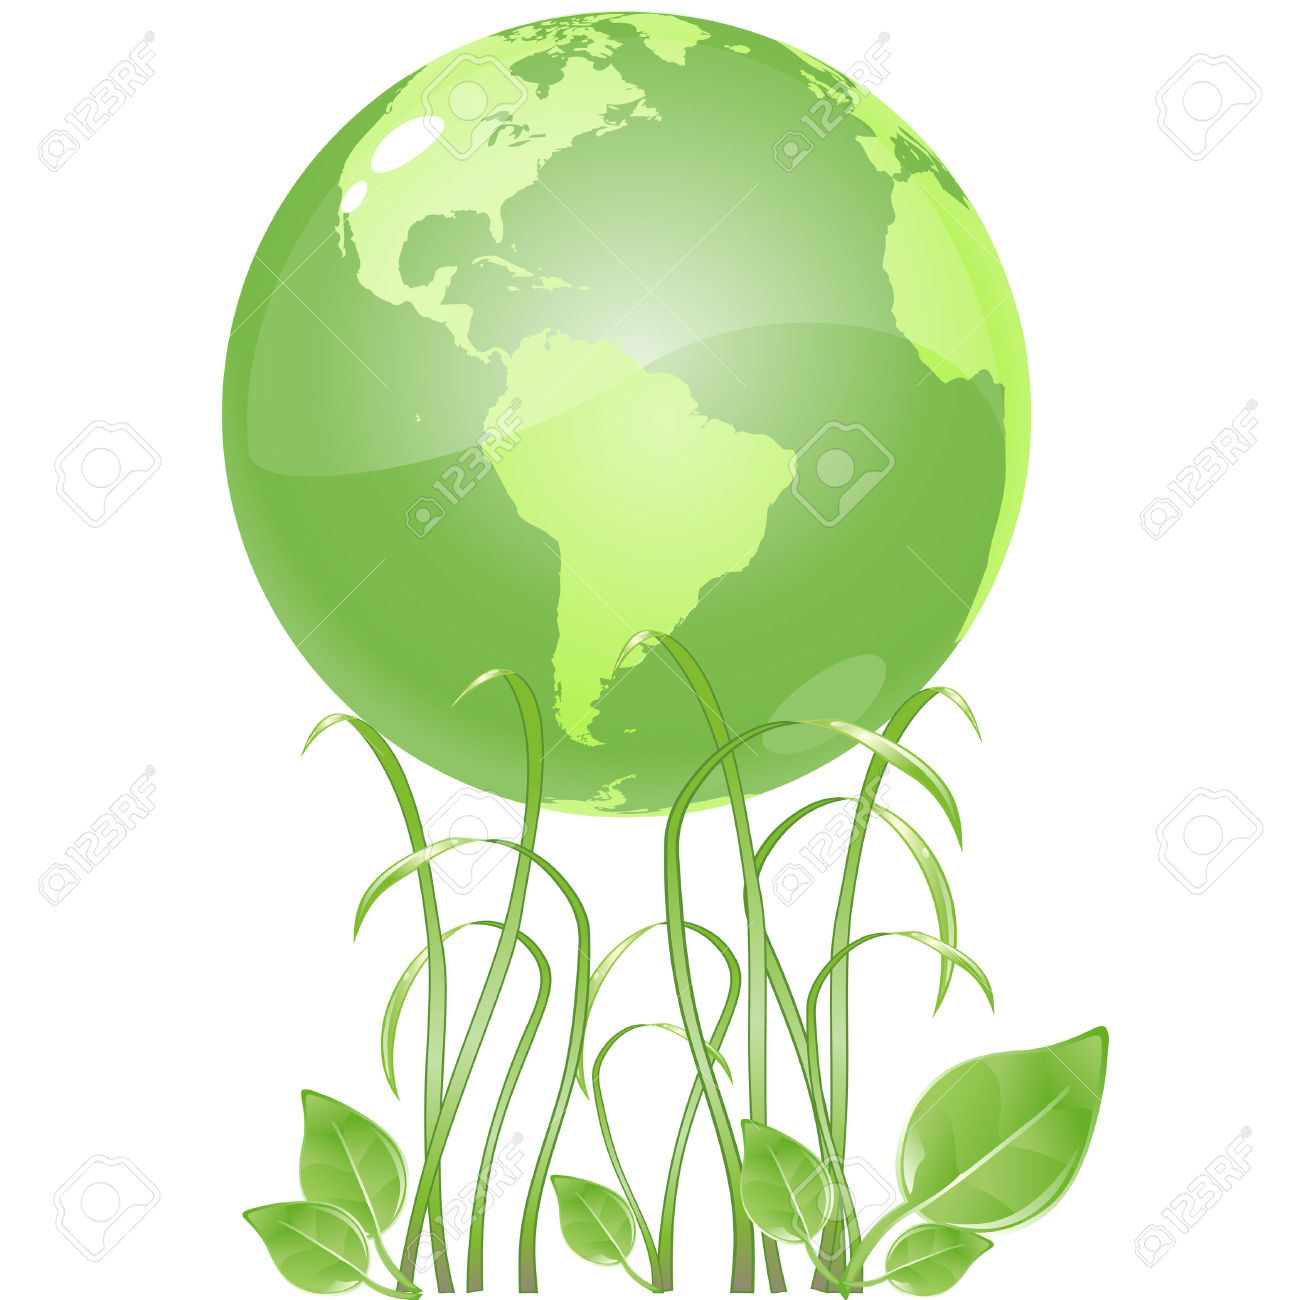 Vector Clip Art Of A Ecologicaly Green, Glossy Globe, Resting.